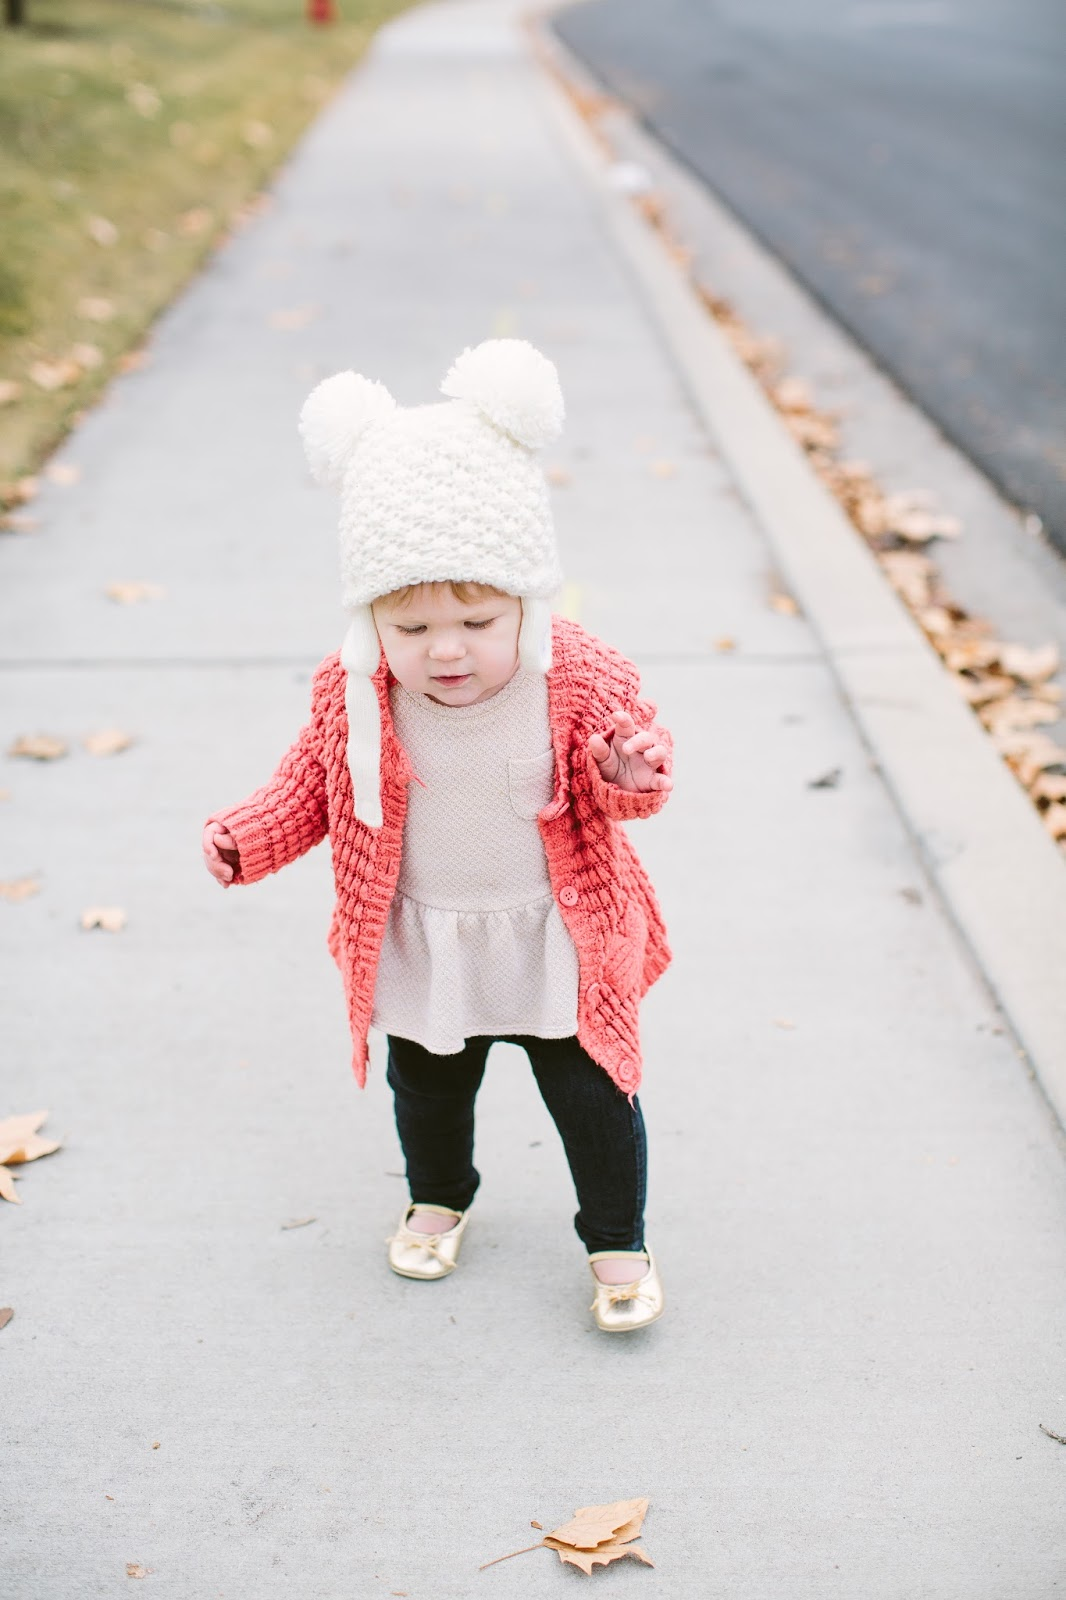 Cute Baby, Baby Fashion, Cute Baby Fashion